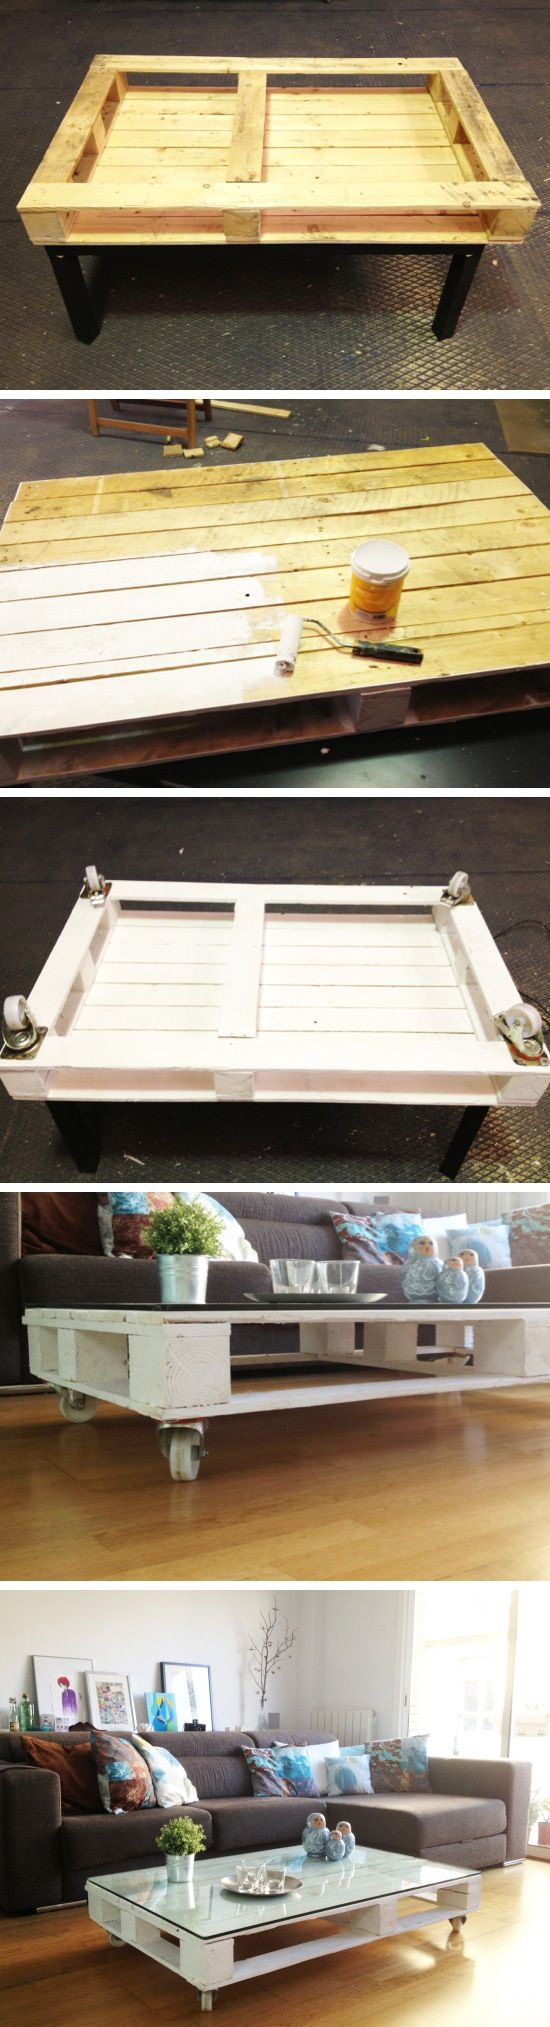 DIY Rolling Pallet Table | Easy & inexpensive!